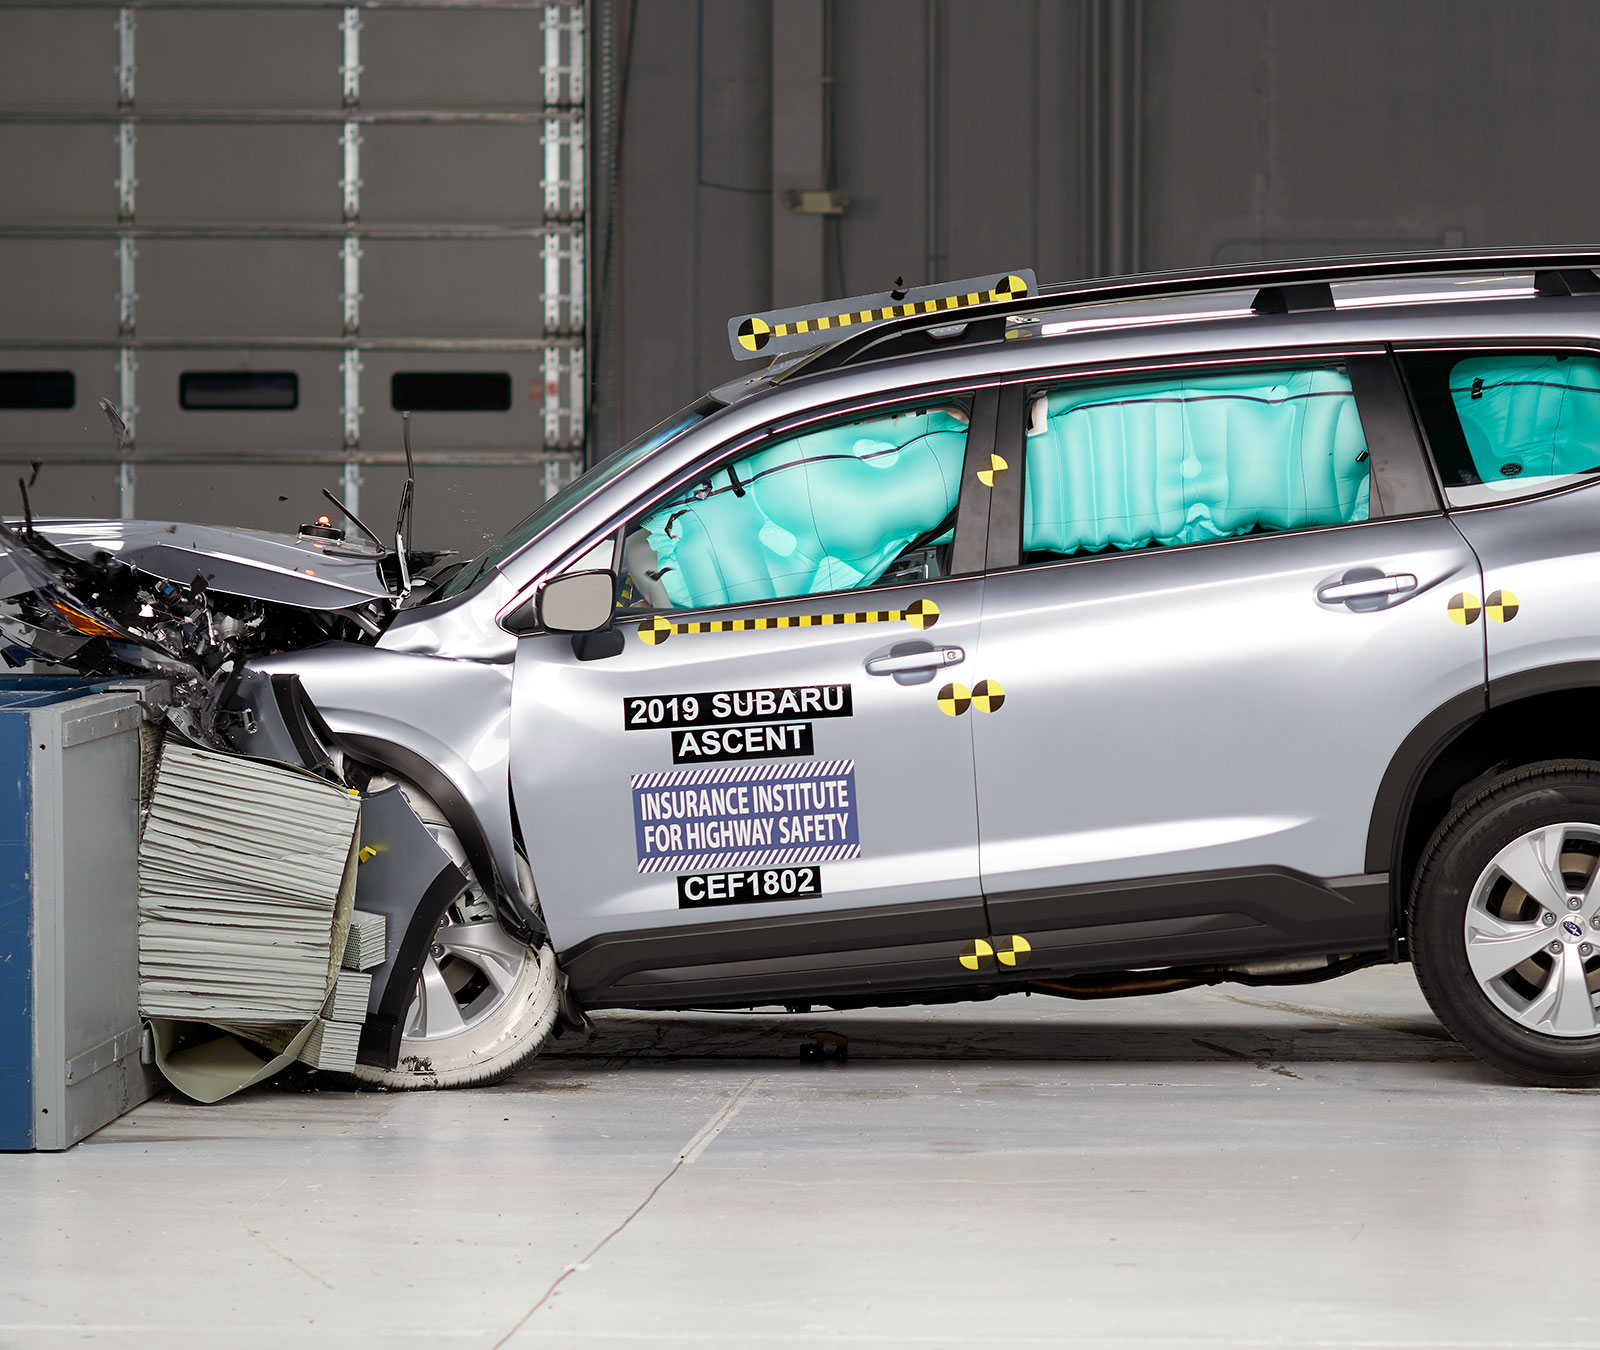 Iihs Safety Ratings >> Top Safety Pick 2019 Subaru Ascent 4 Door Suv With Specific